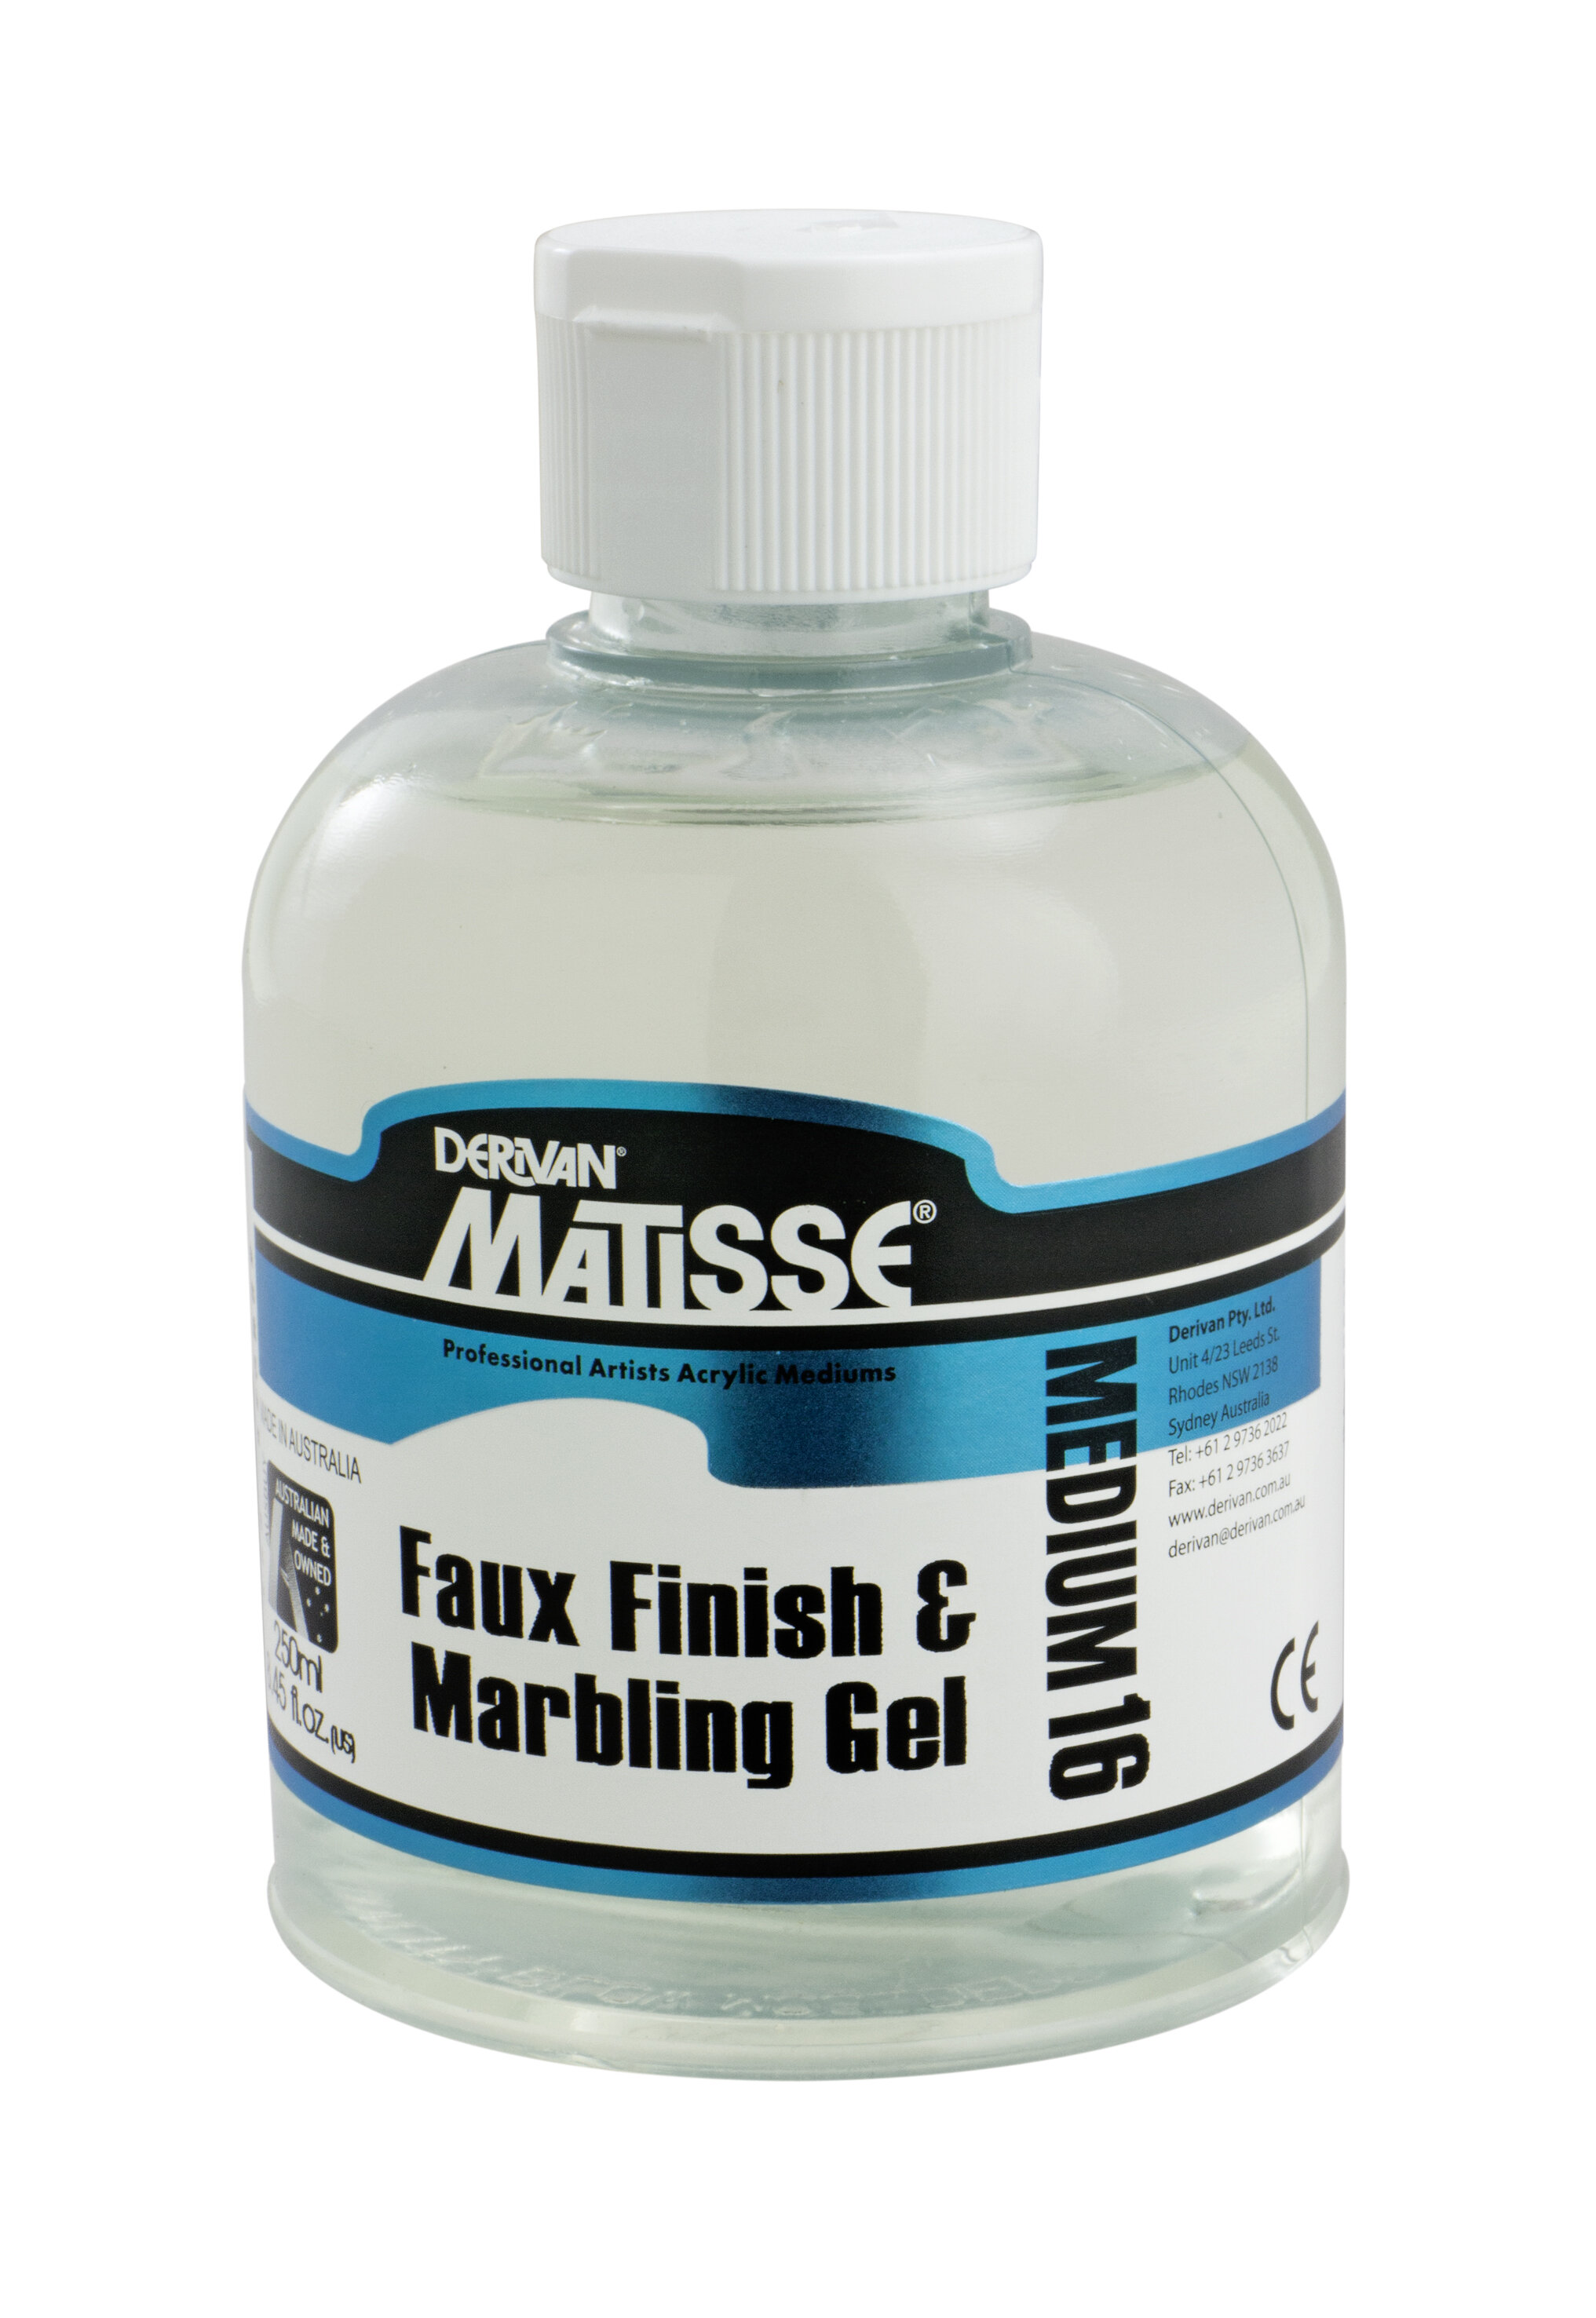 MM16 Faux Finish & Marbling Gel - ———————Also known as scumble glaze. Mix with Matisse Colours to slow drying time and extend the paint to achieve transparent glazes.